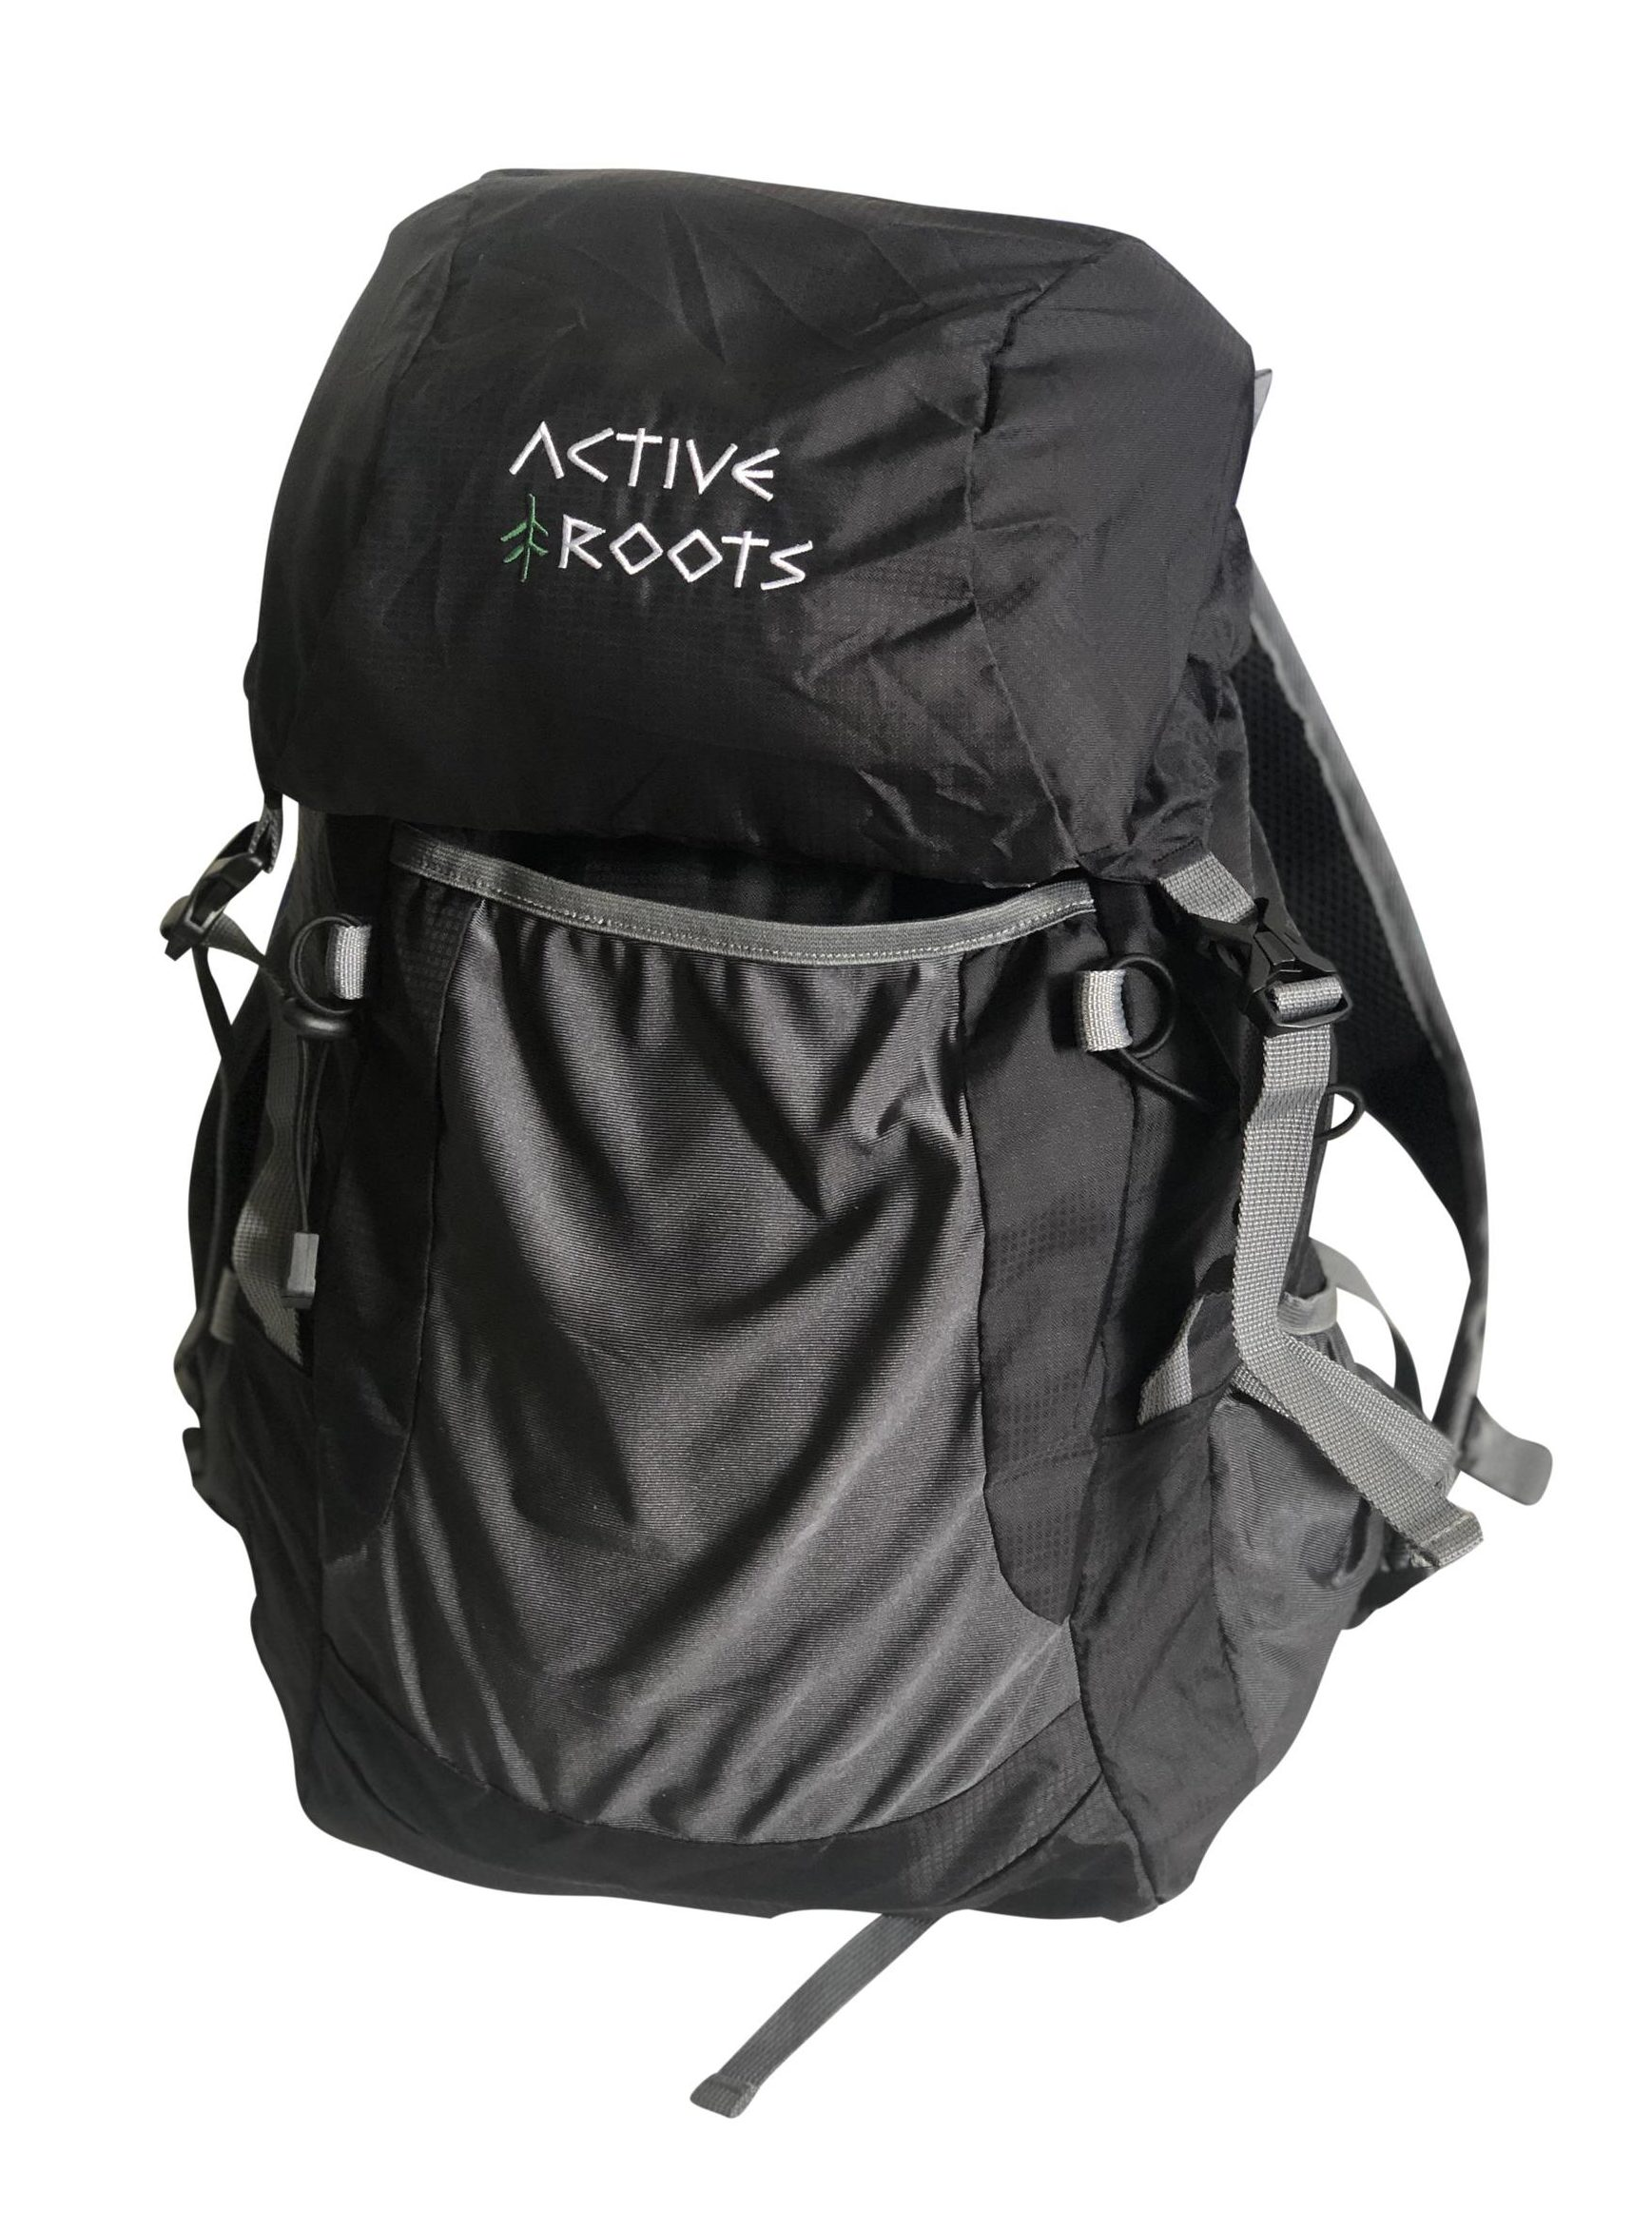 Active Roots foldable daypack - simple daypack for travel